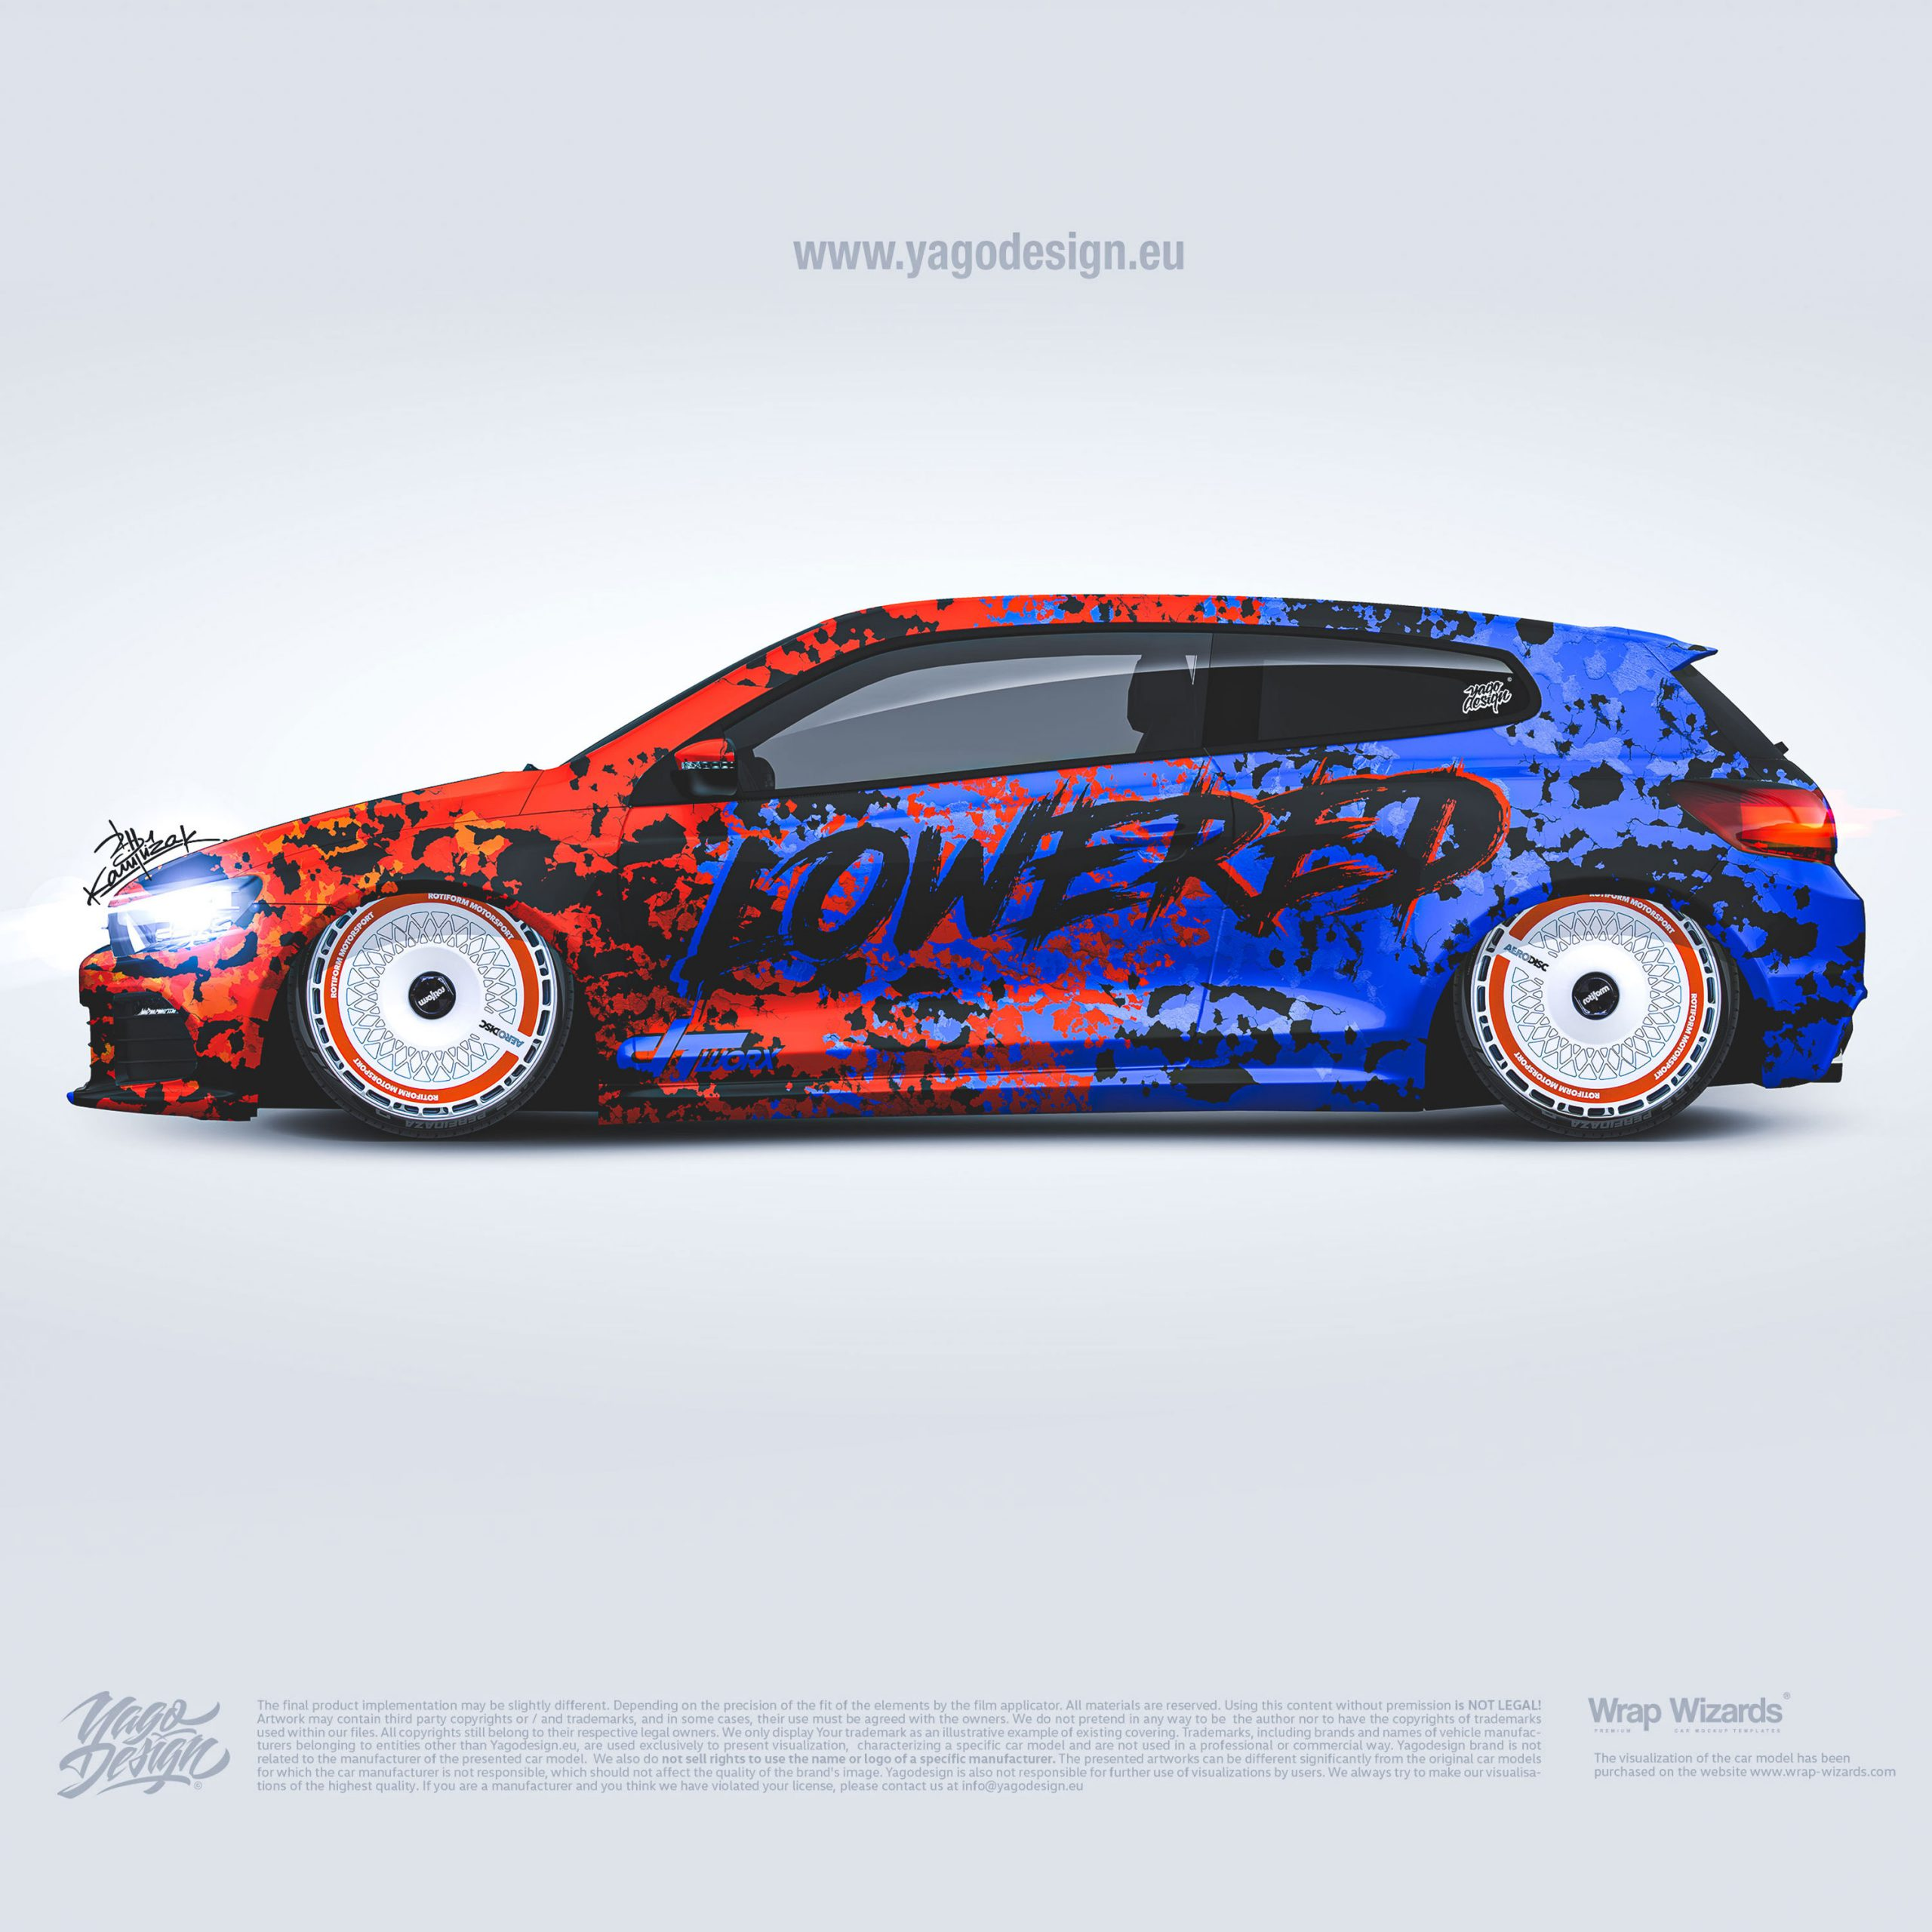 Volkswagen-Scirocco–by-Yagodesign-Livery-Design-Car-wrapping-studio